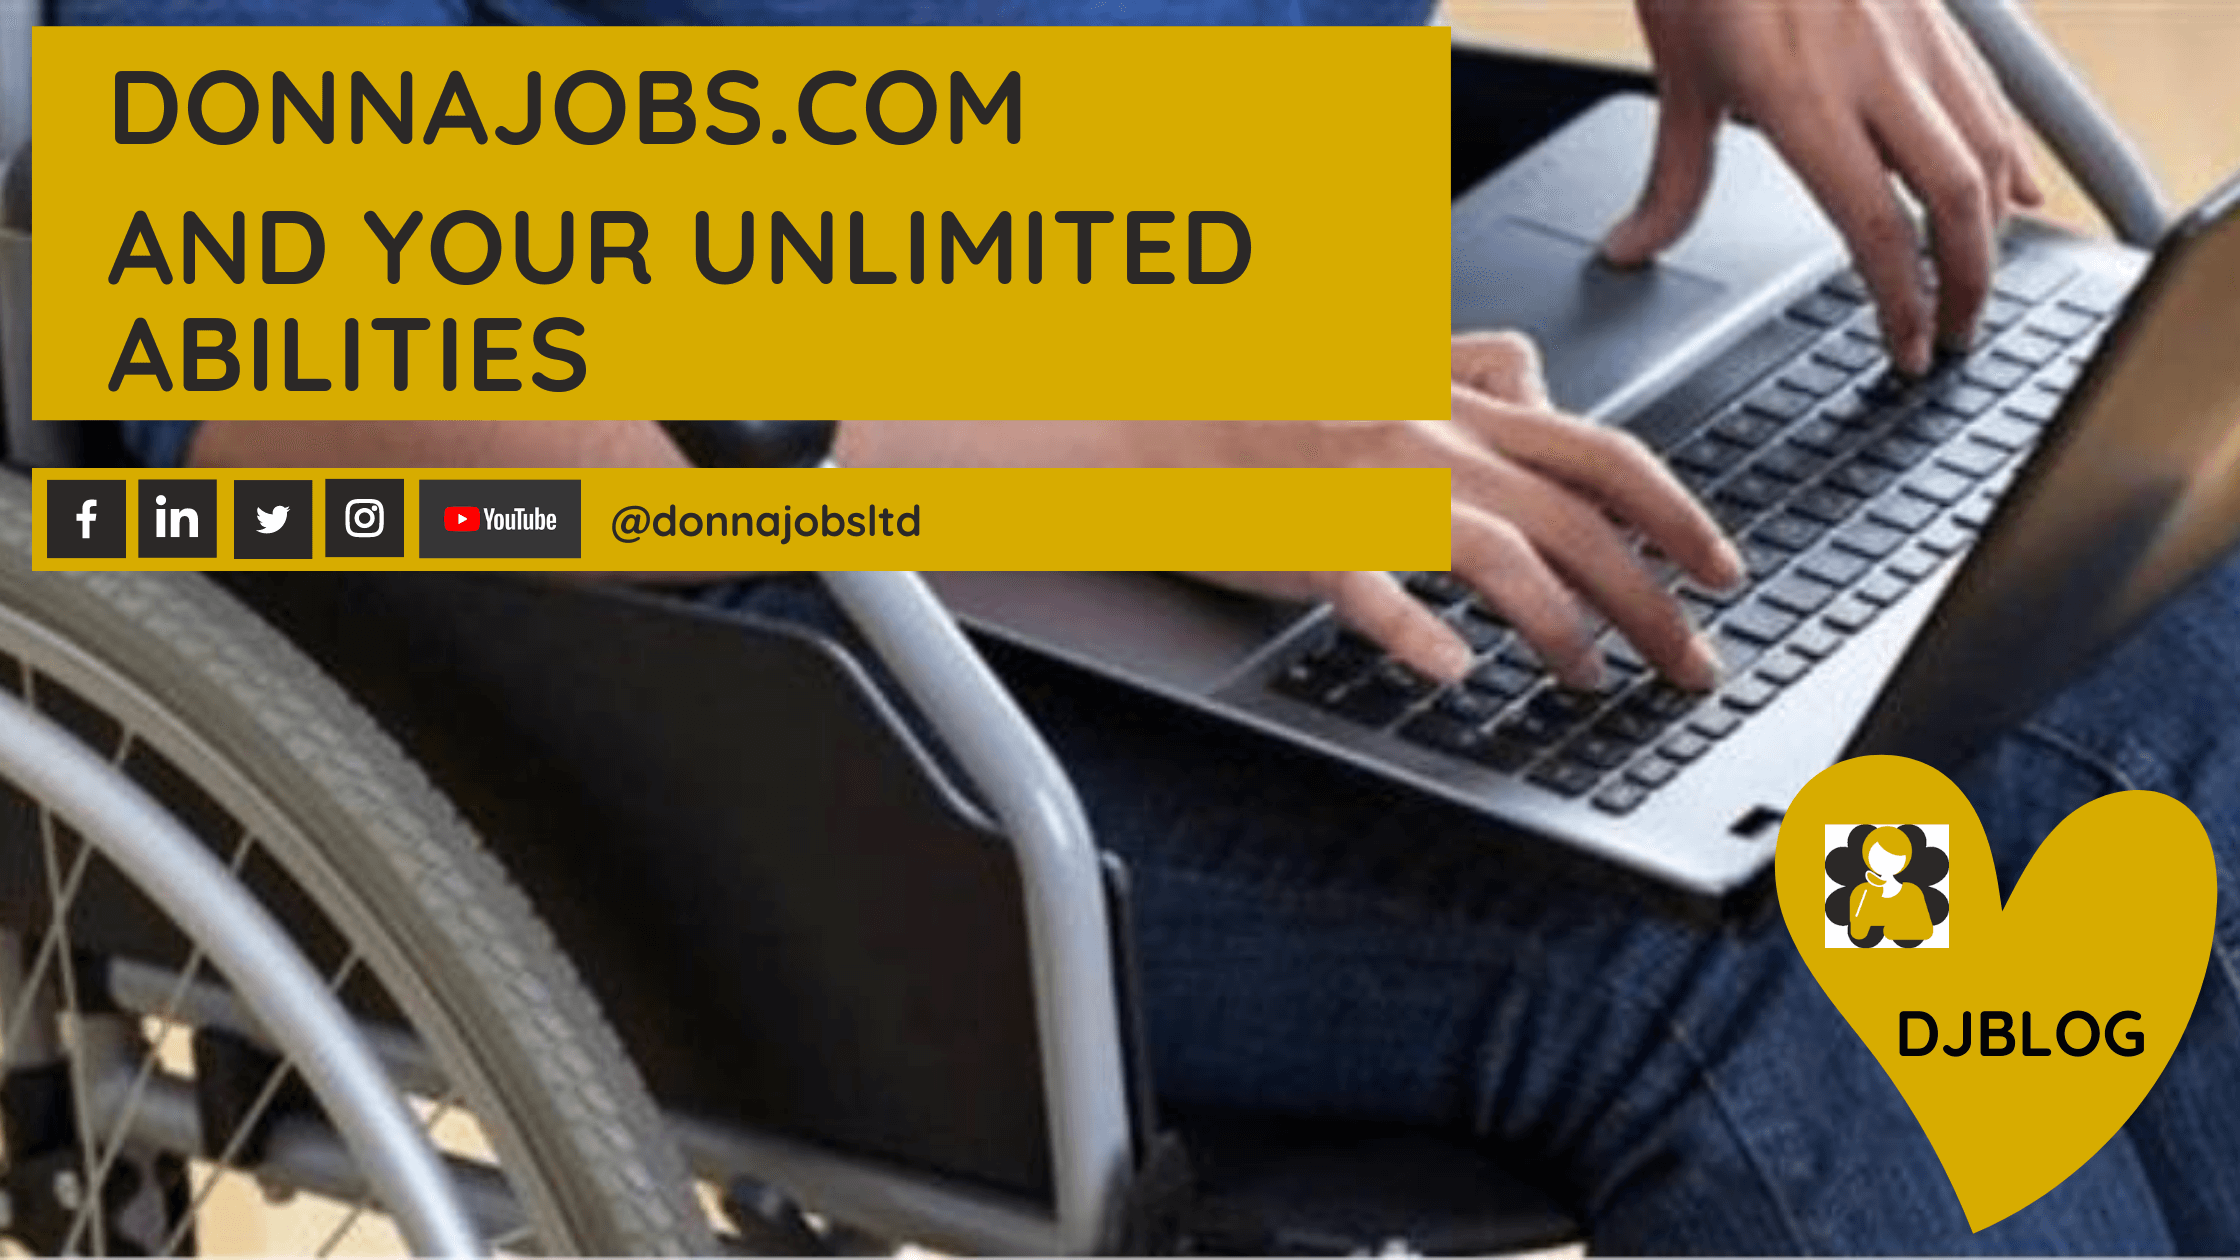 DonnaJobs.com and your unlimited abilities